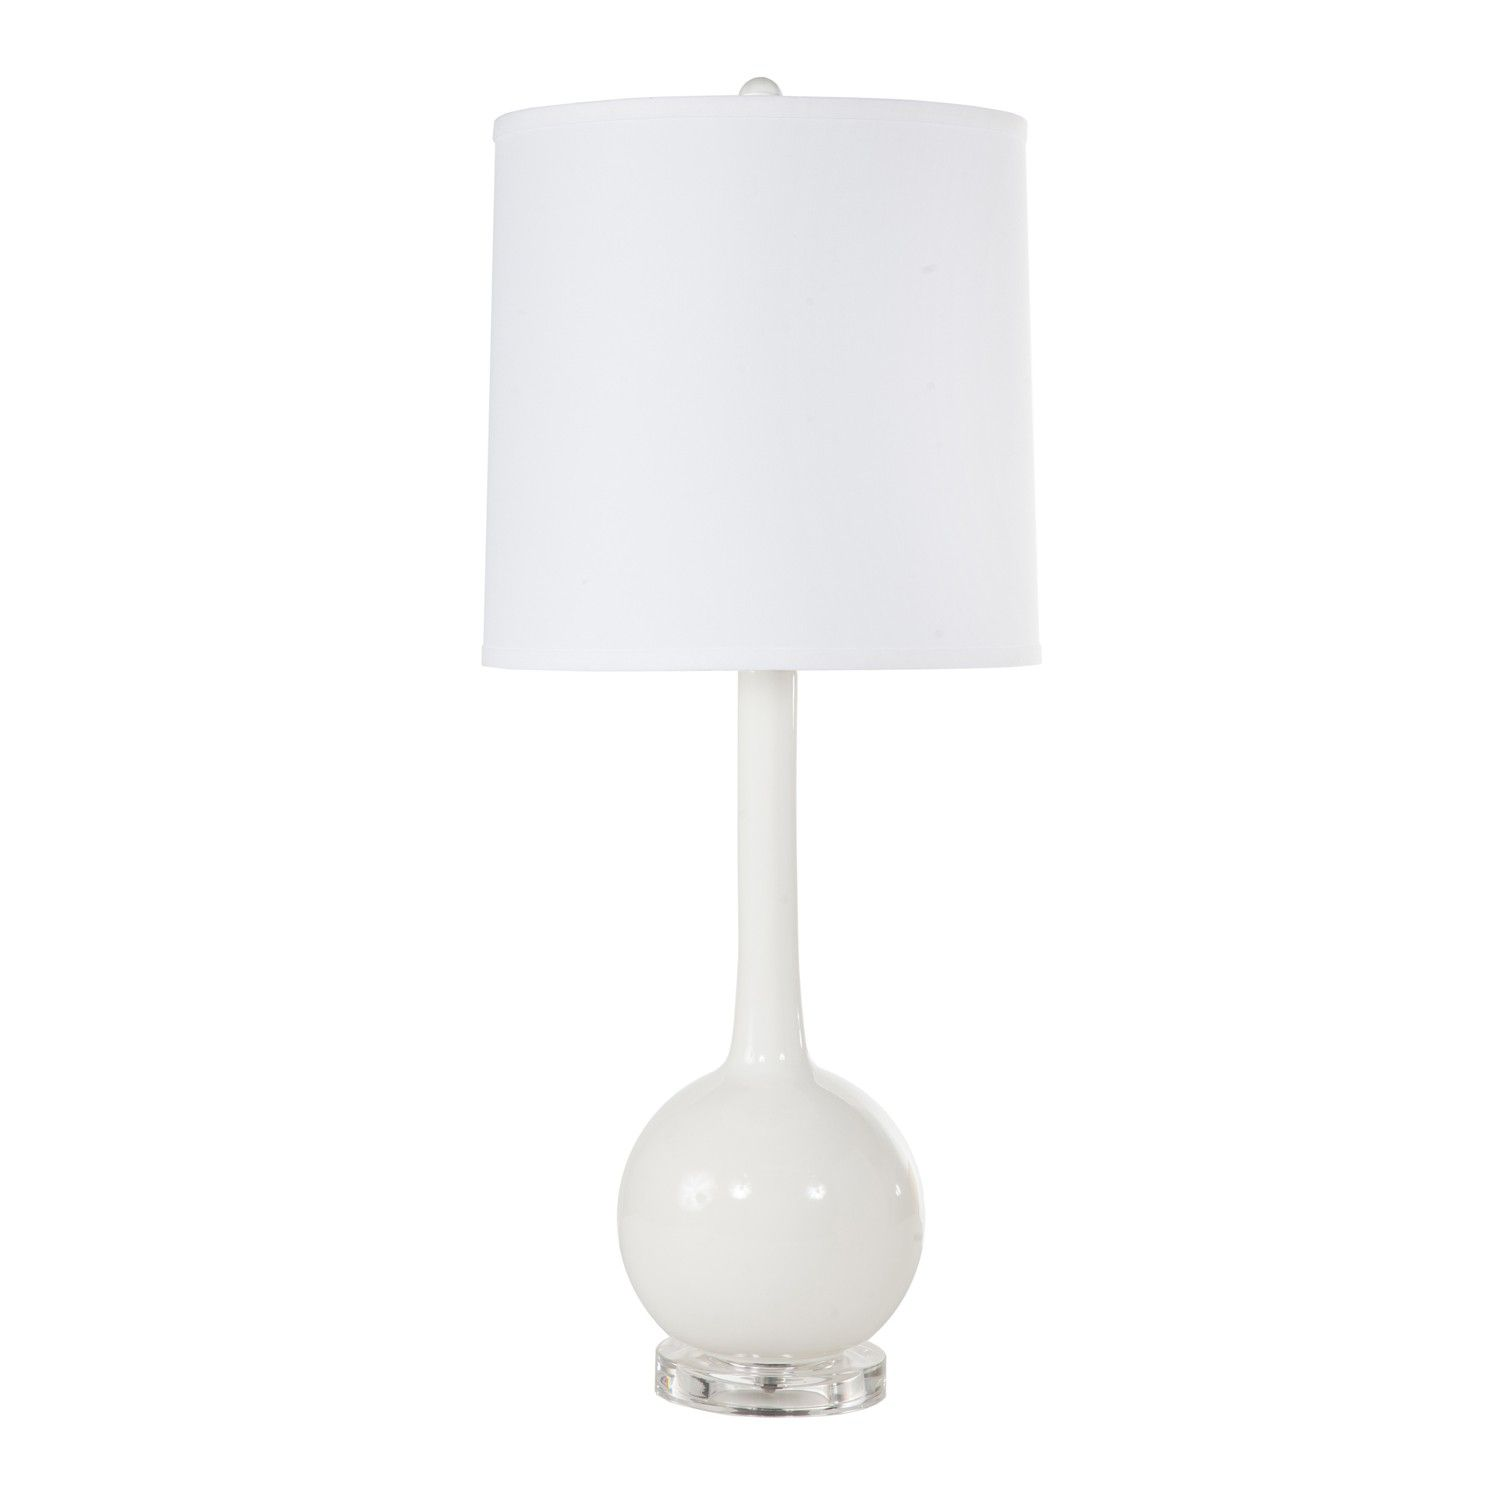 Lydia Wh Lighting Collection Table Lamp Ceramic Table Lamps White Table Lamp